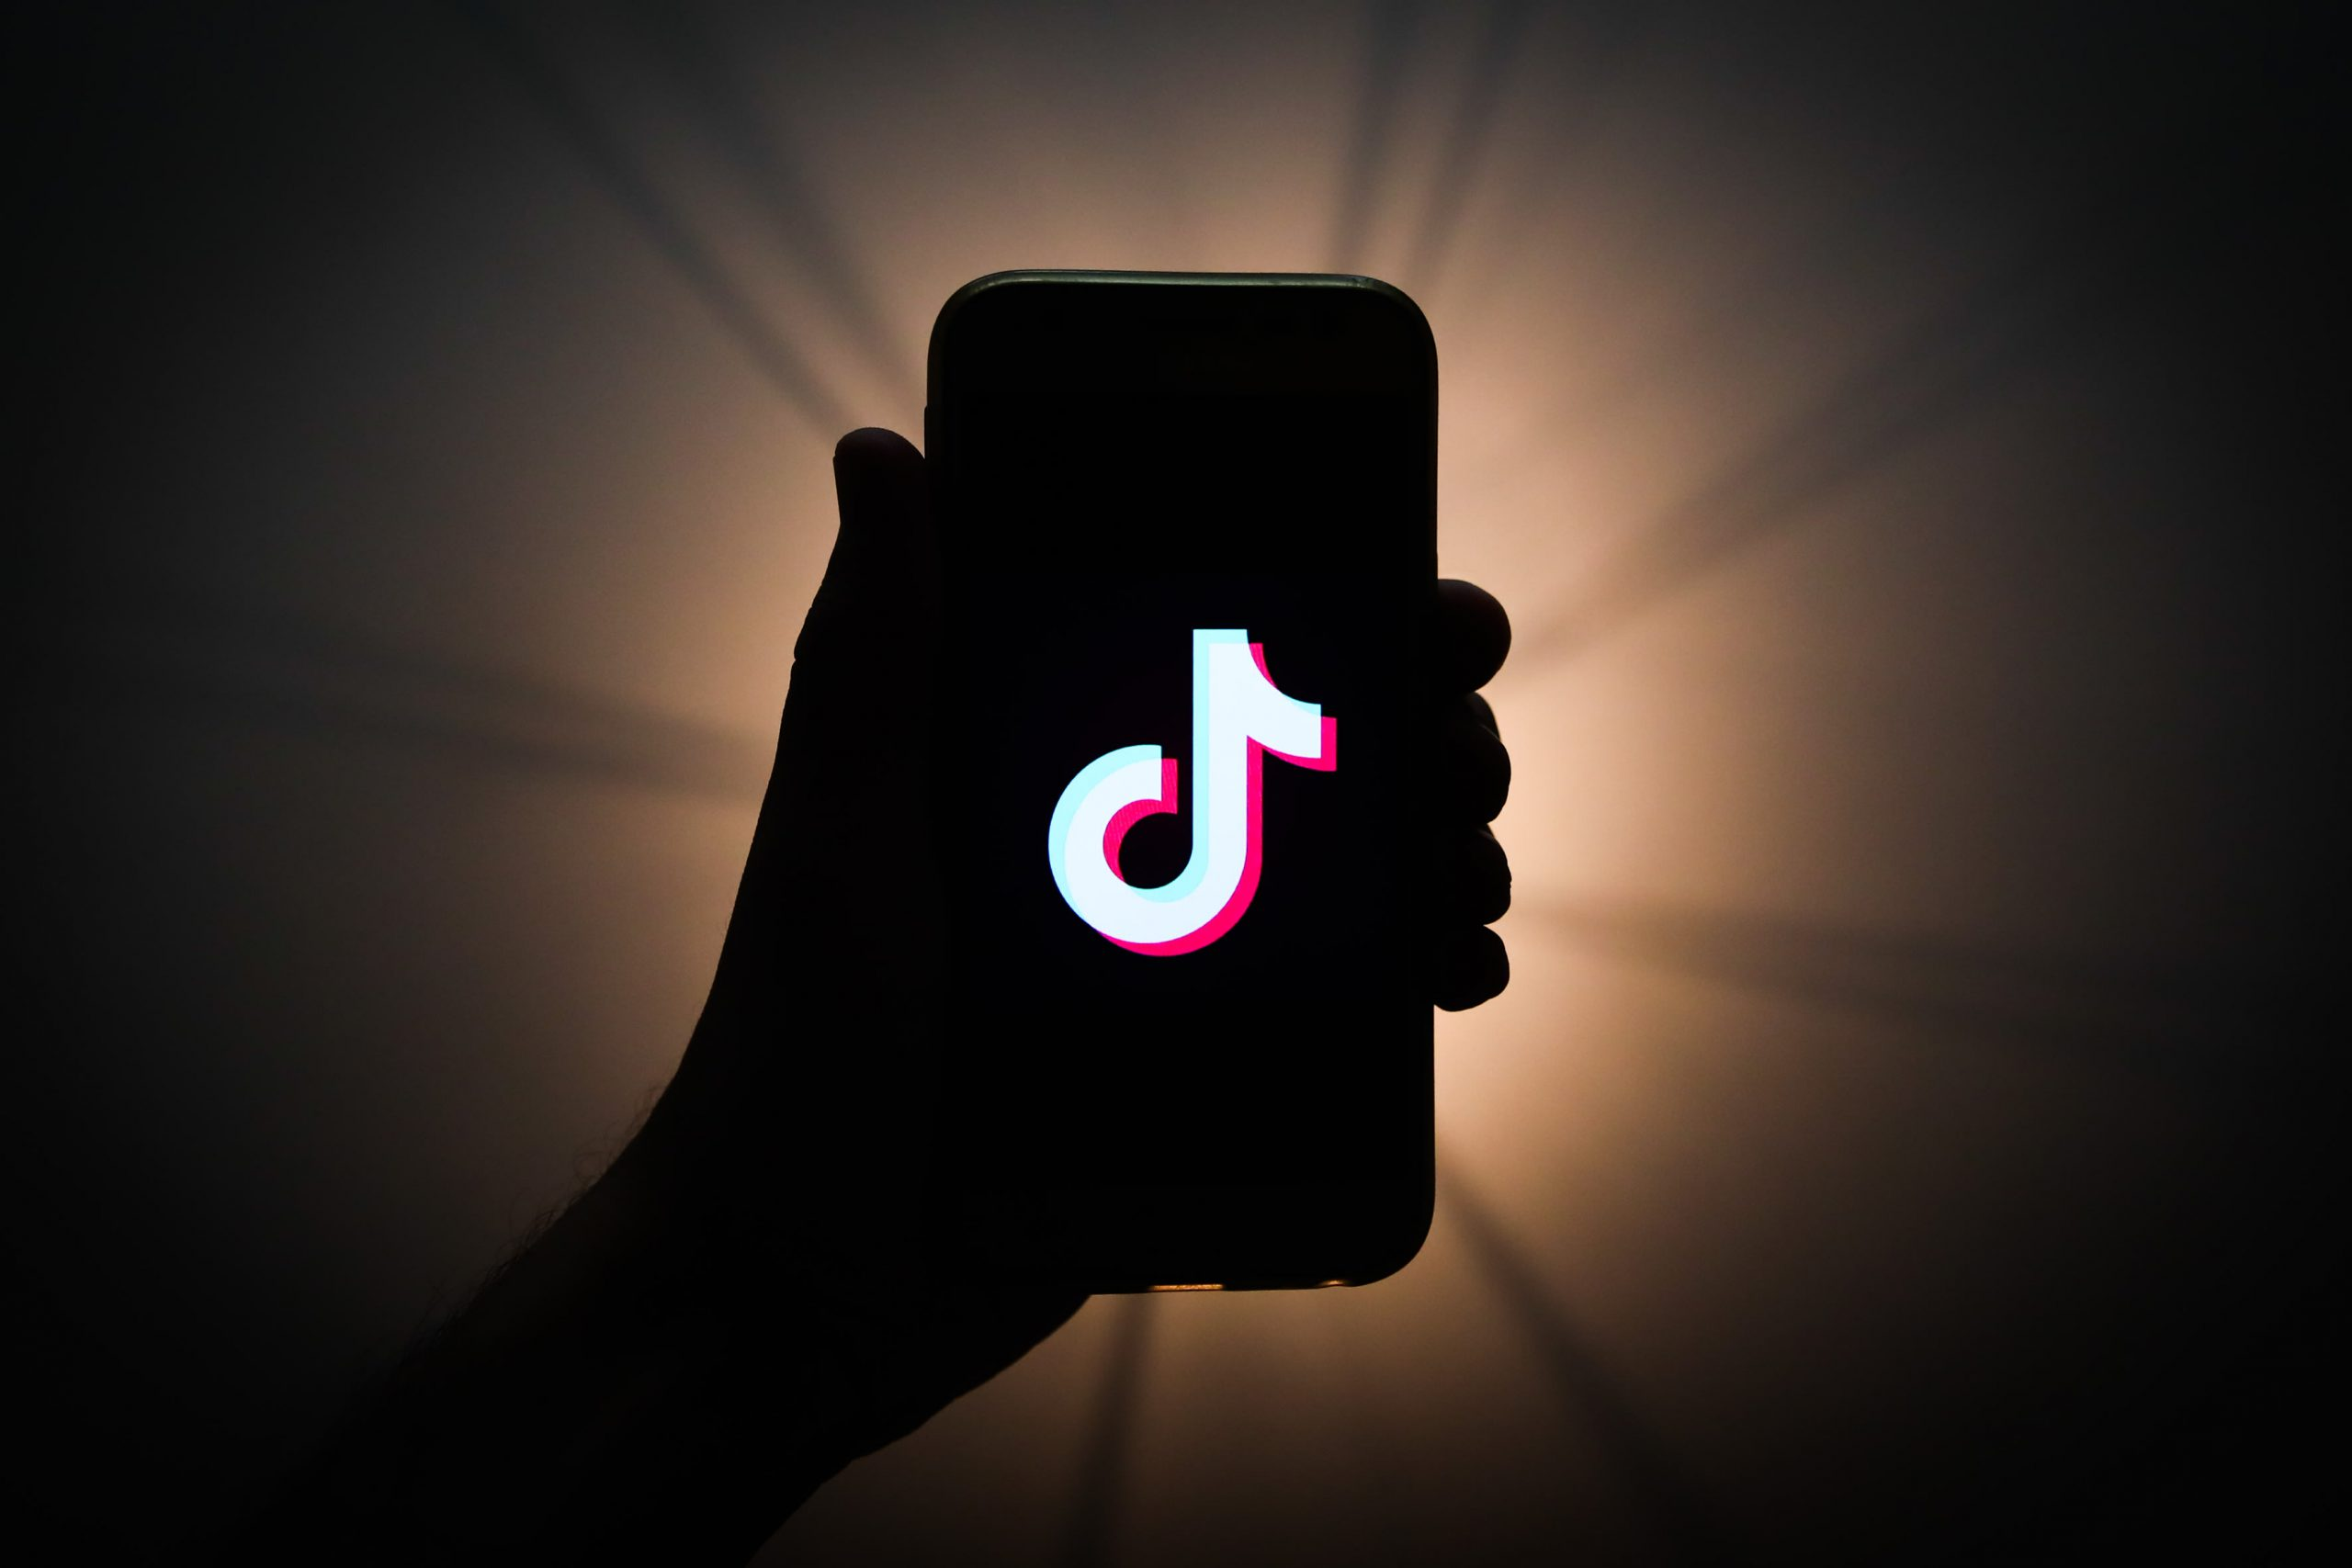 How TikTok went from a fun viral app to caught in the crosshairs of the US government